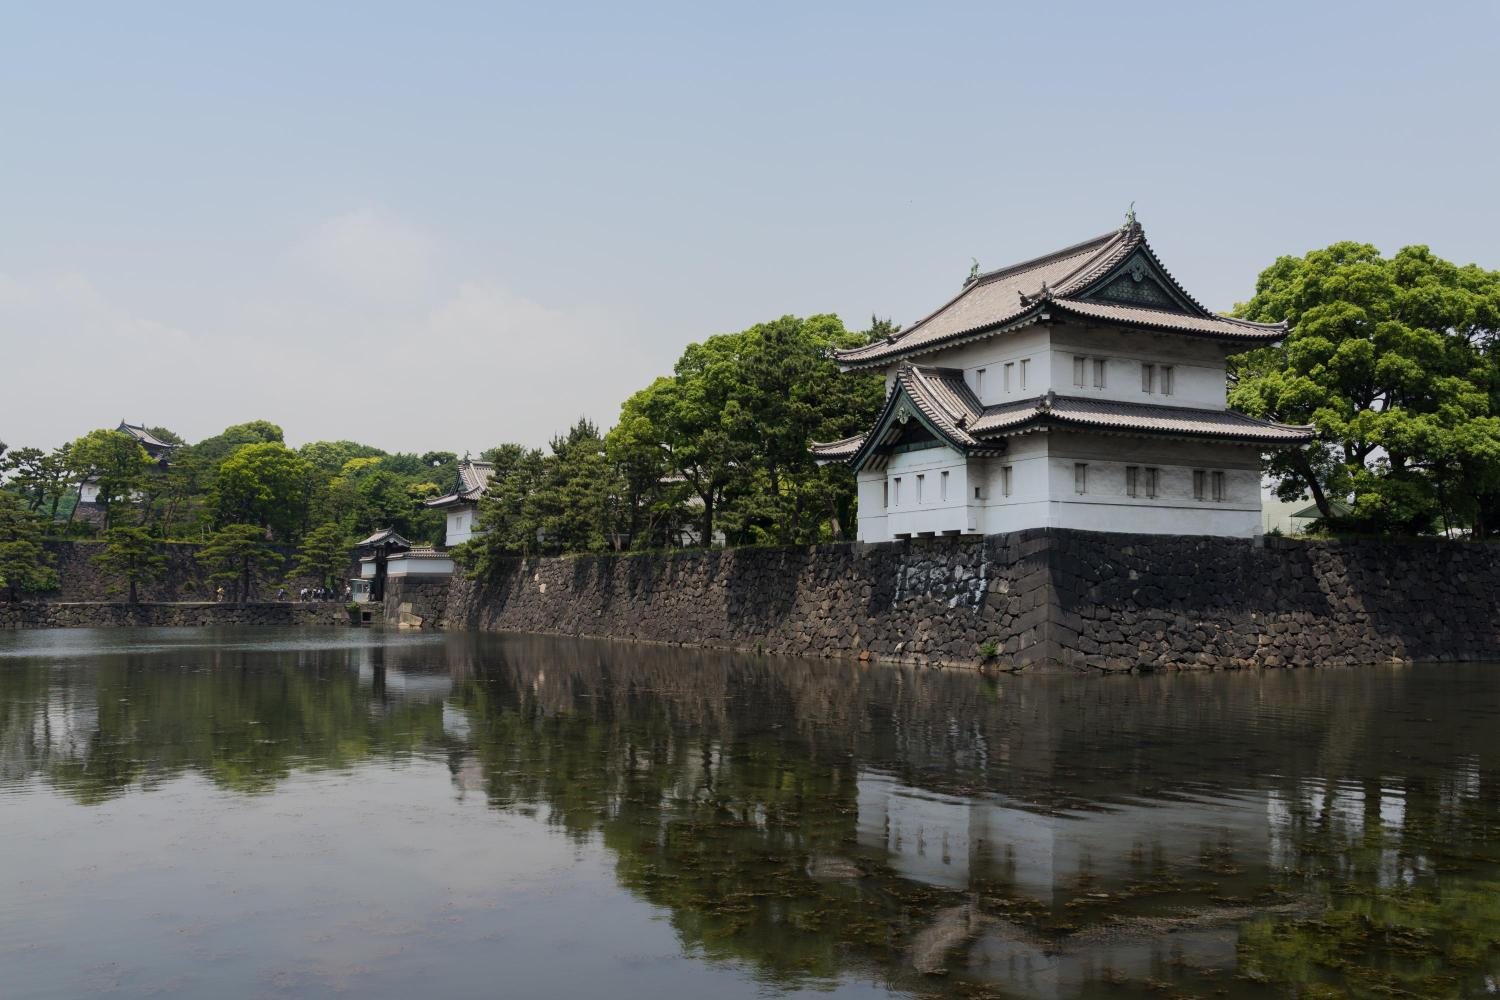 Heiseikan Tokyo, The Imperial Palace Area with many remains of Edo Castle ...